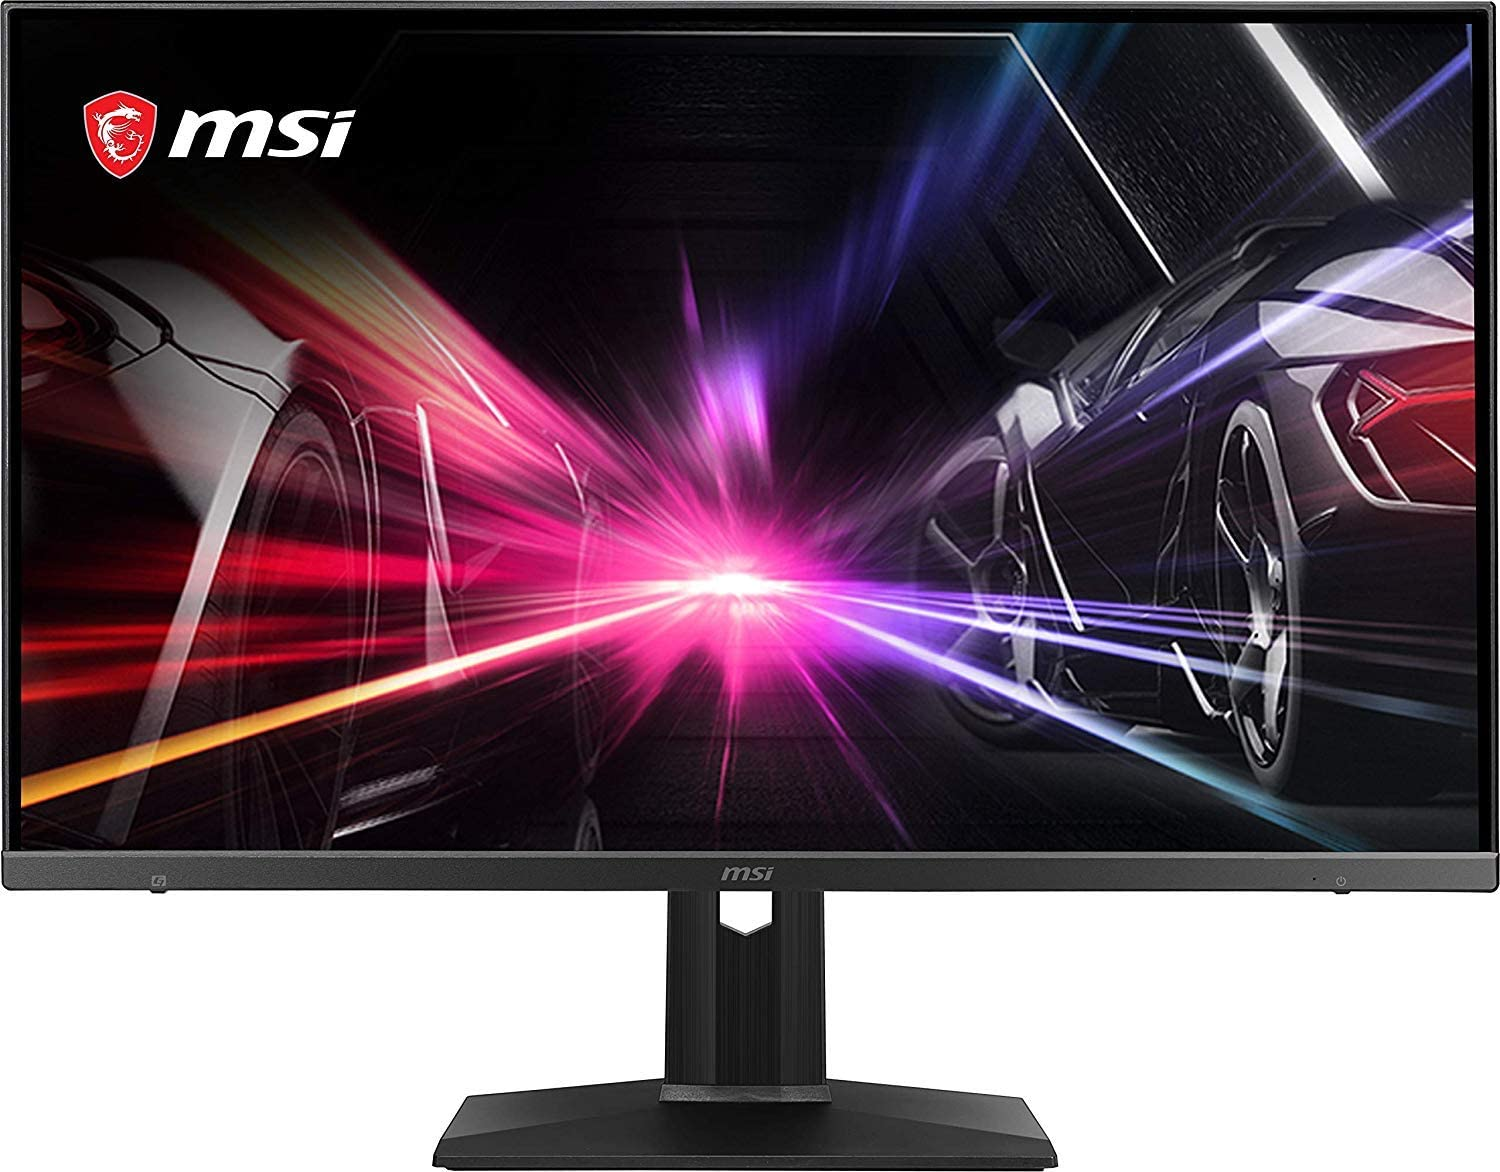 "MSI FHD non-Glare with Narrow Bezel 165Hz 1ms Height Adjustment AMD FreeSync HDMI/DP 1920 x 1080 27"" Gaming Monitor (Optix MAG271R),Black"